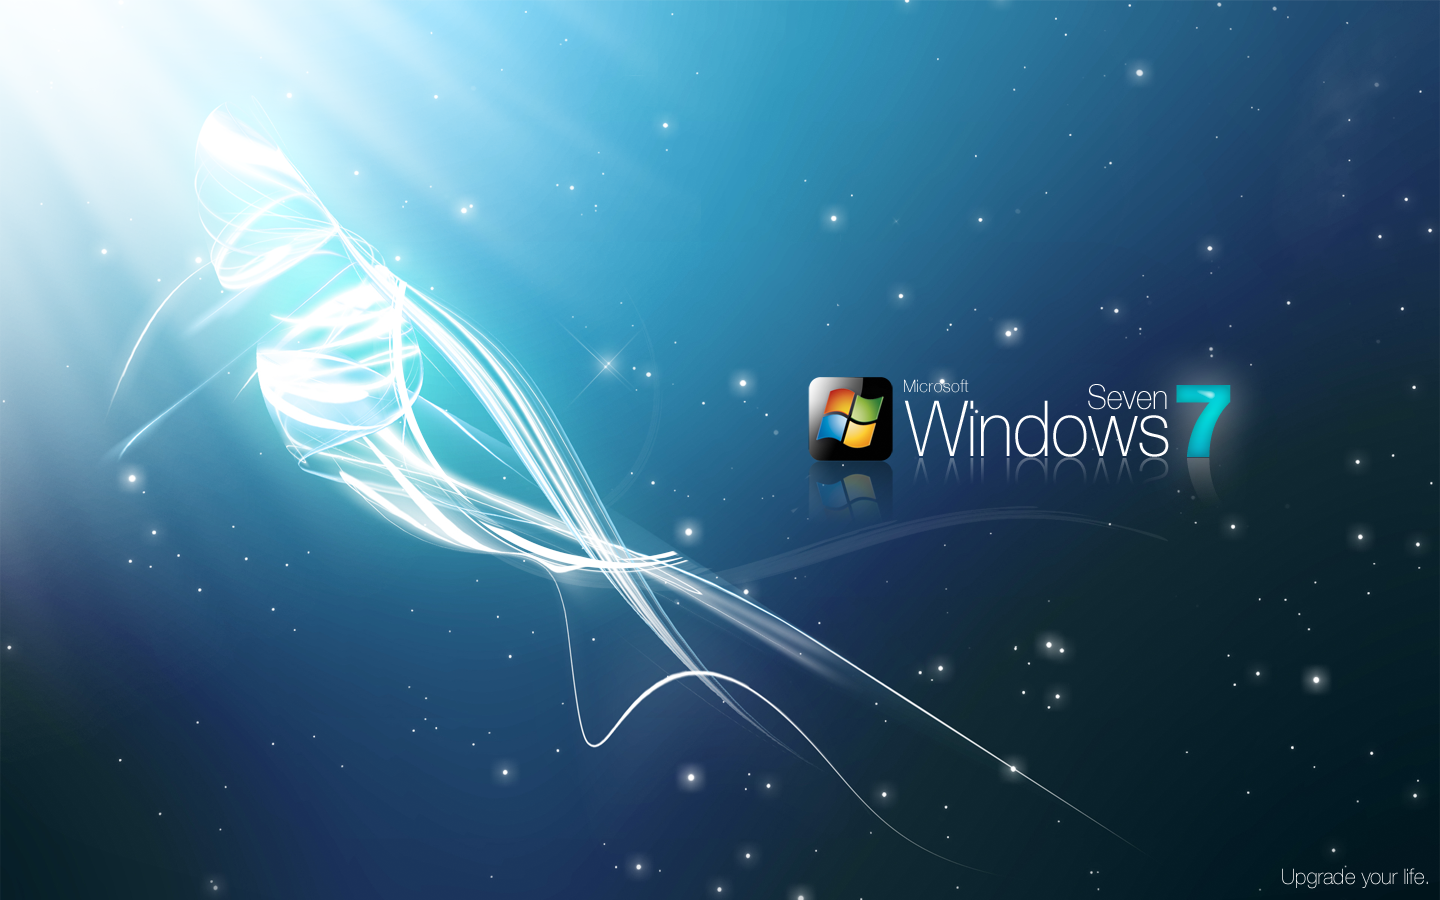 screensavers windows 7 64bit - photo #35